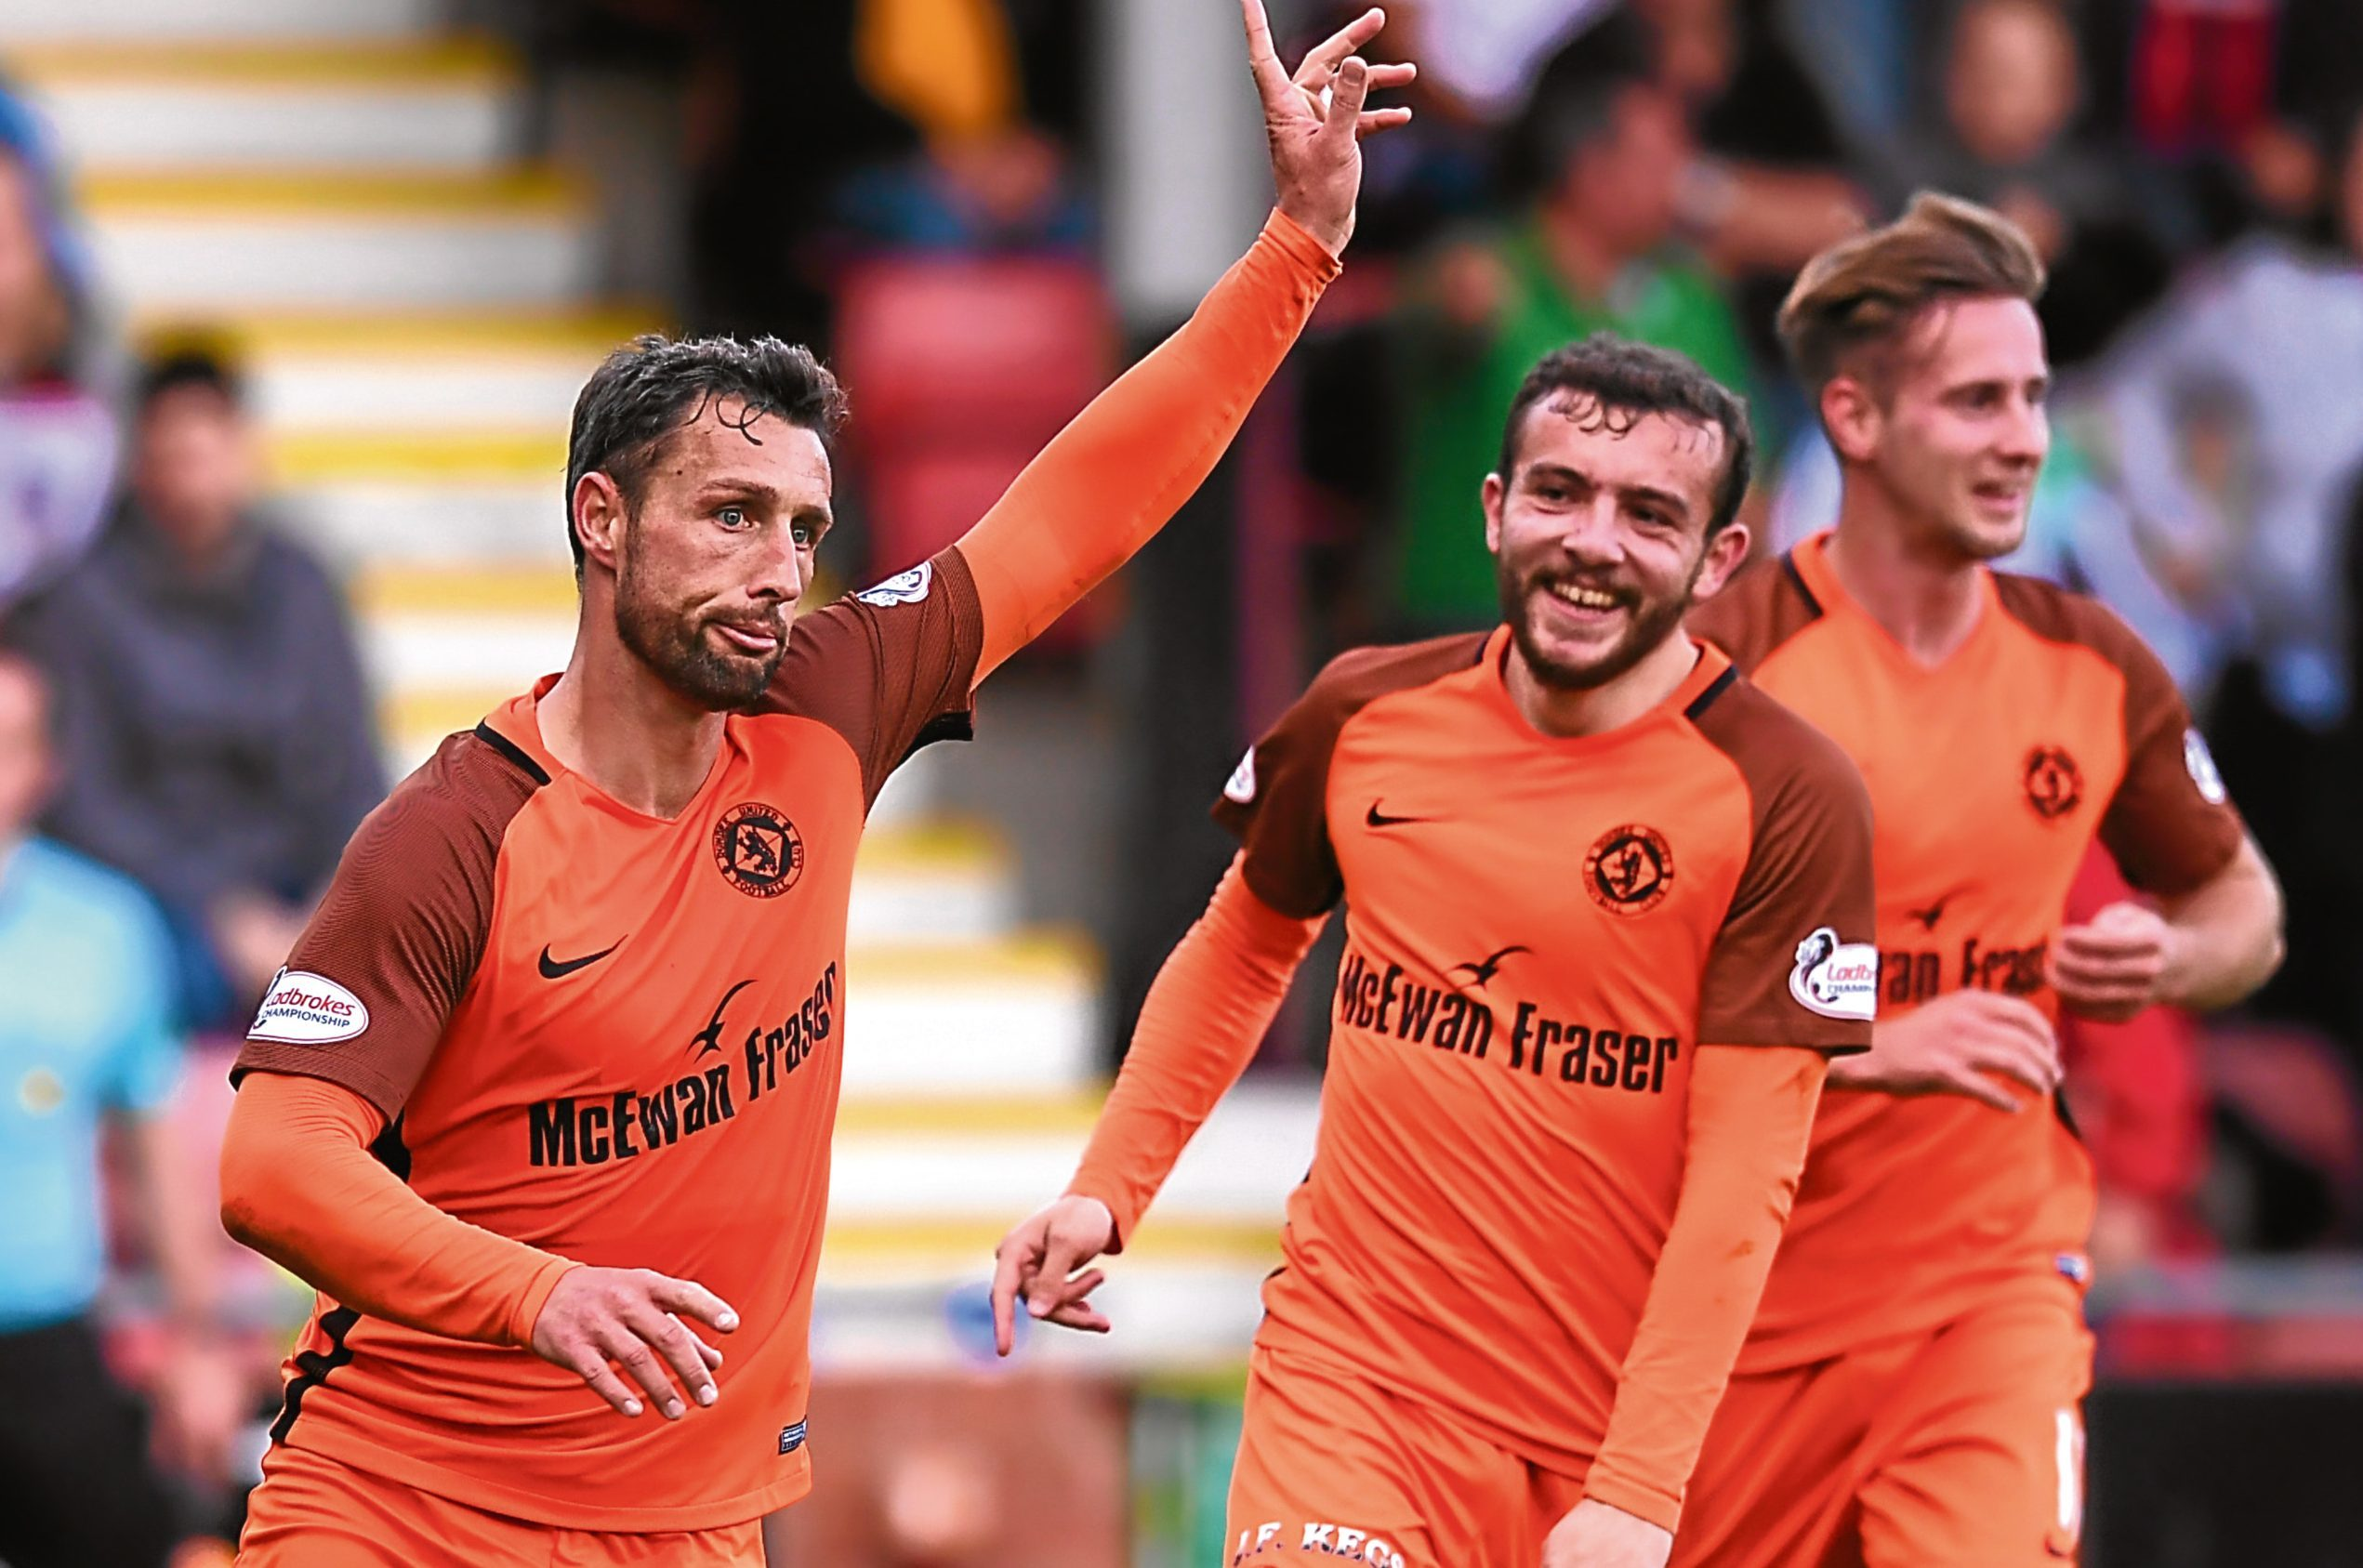 Dundee United attacker Scott McDonald makes it 2-0 against Dunfermline. The                 Tannadice men are beginning to find their form and are within touching distance of topping the Championship table.